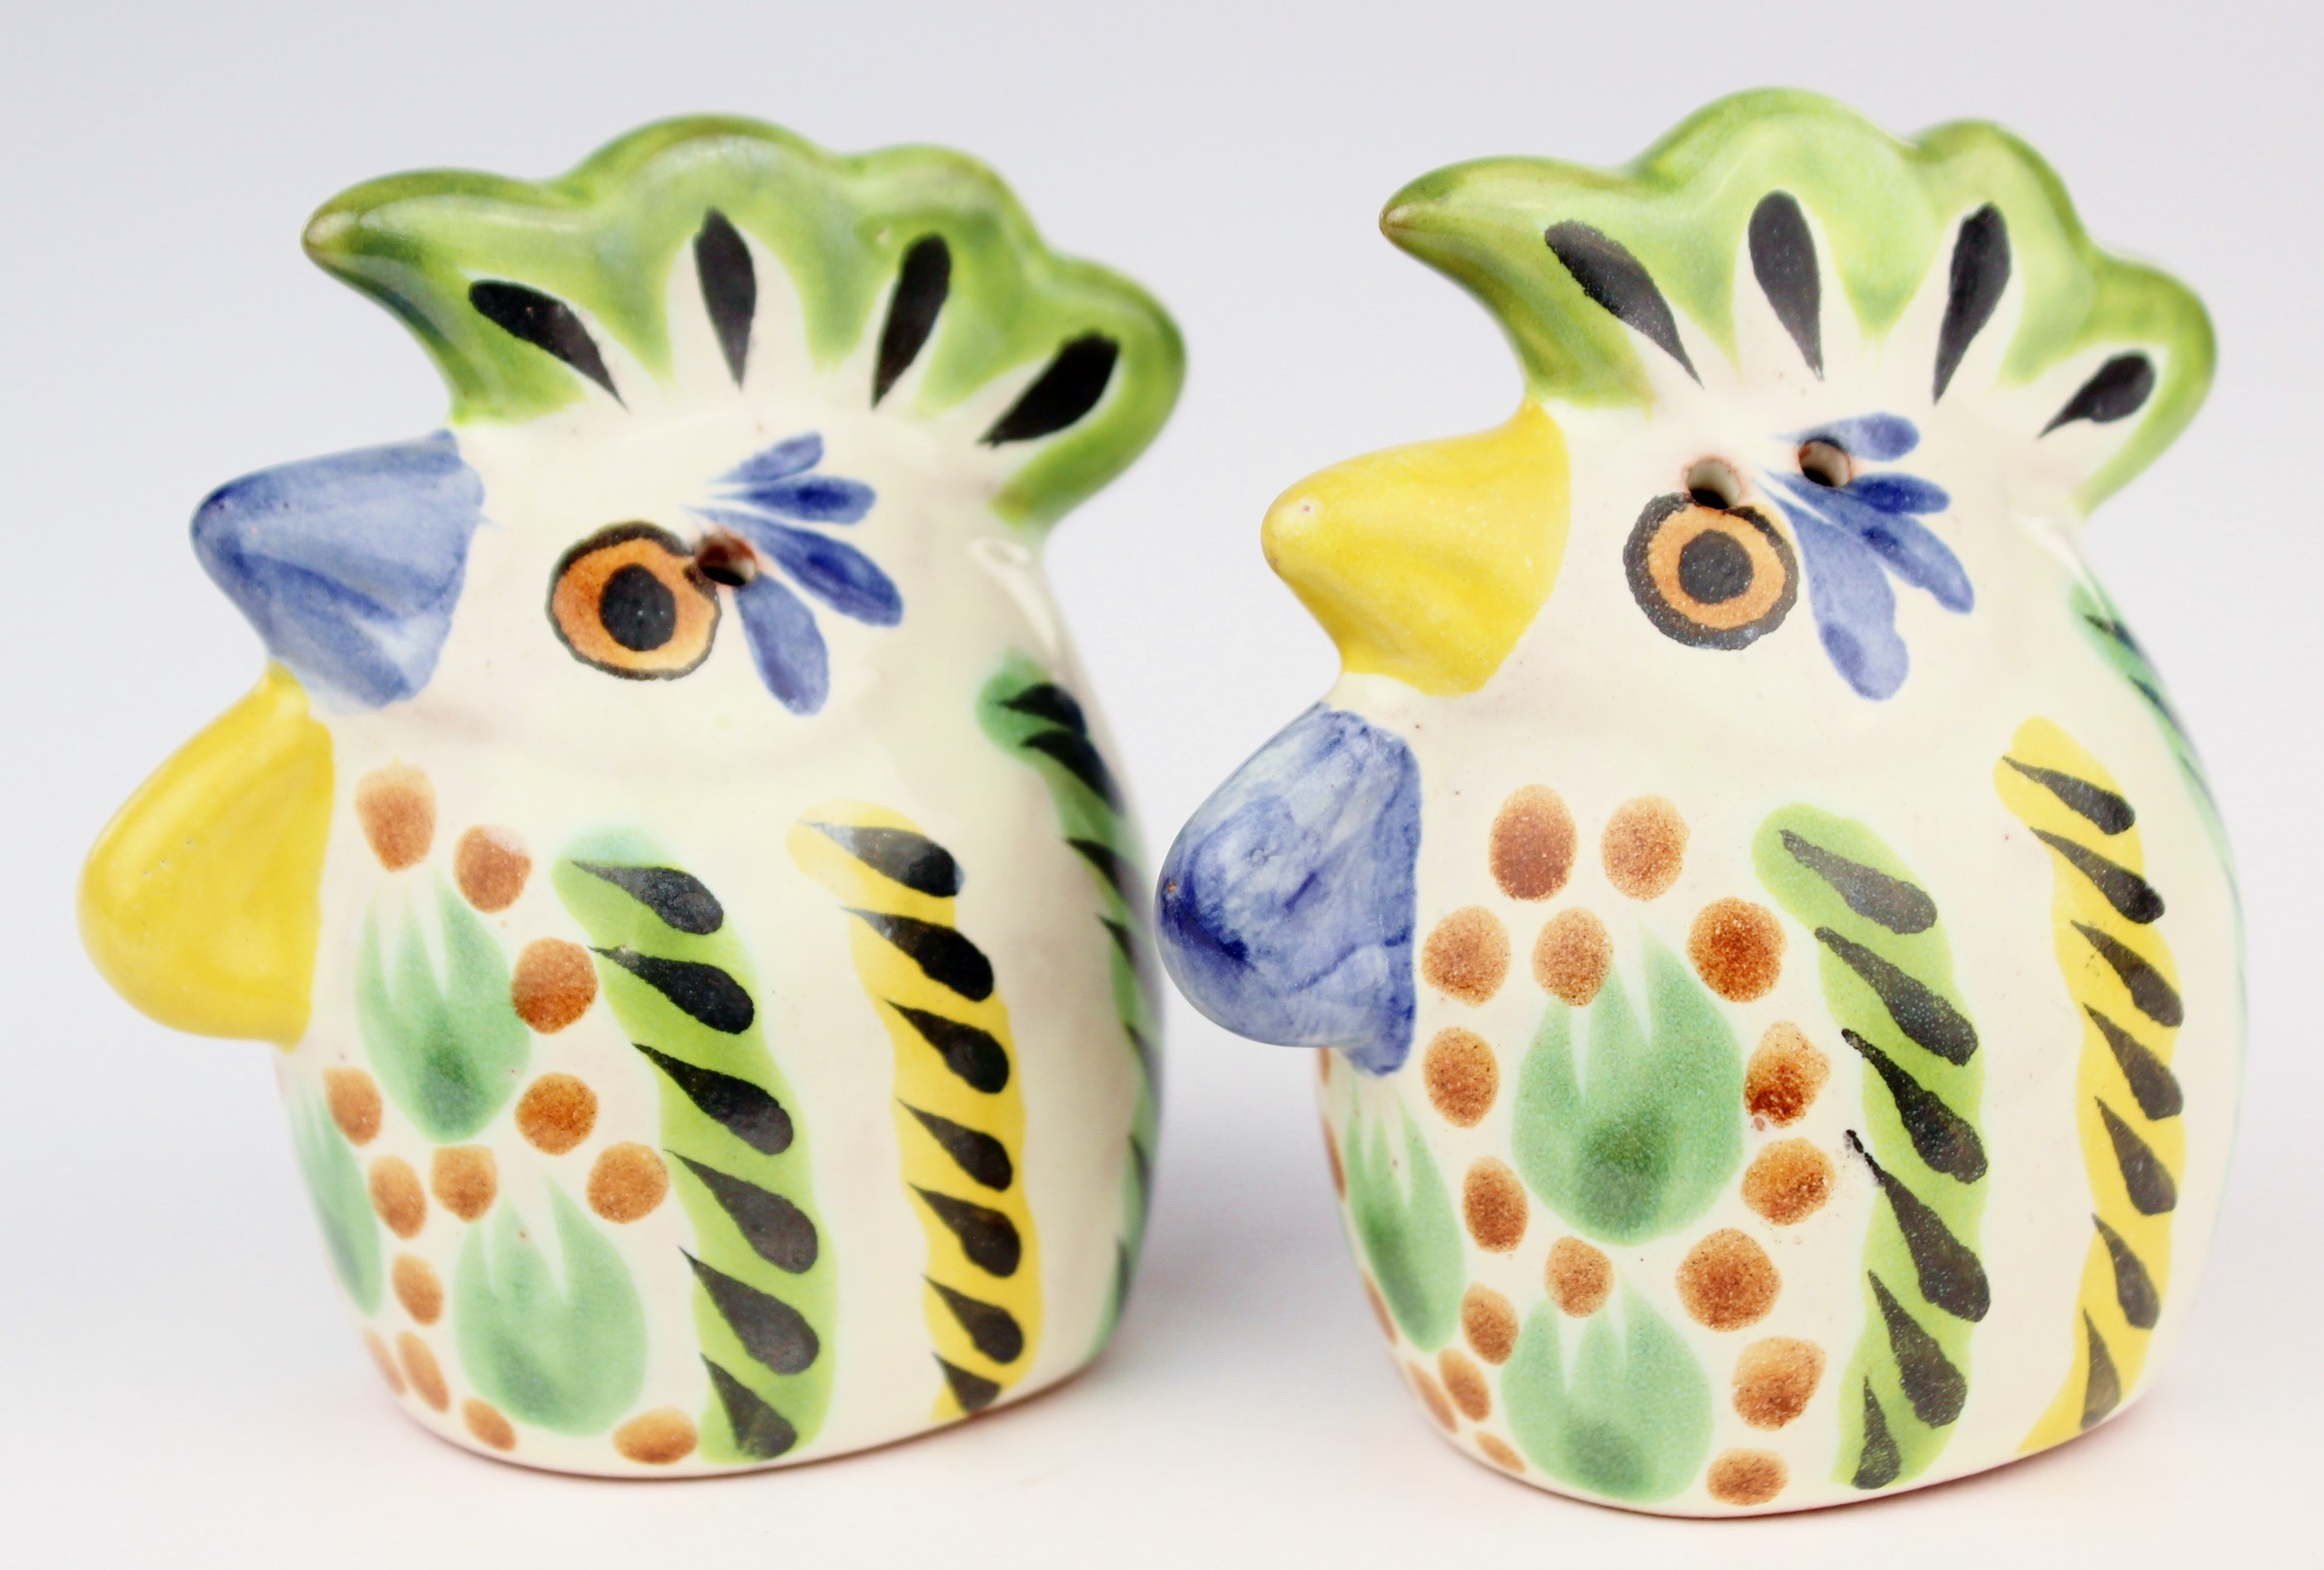 Gorky Gonzalez Majolica Ceramic Rooster Chicken Salt And Pepper Shakers